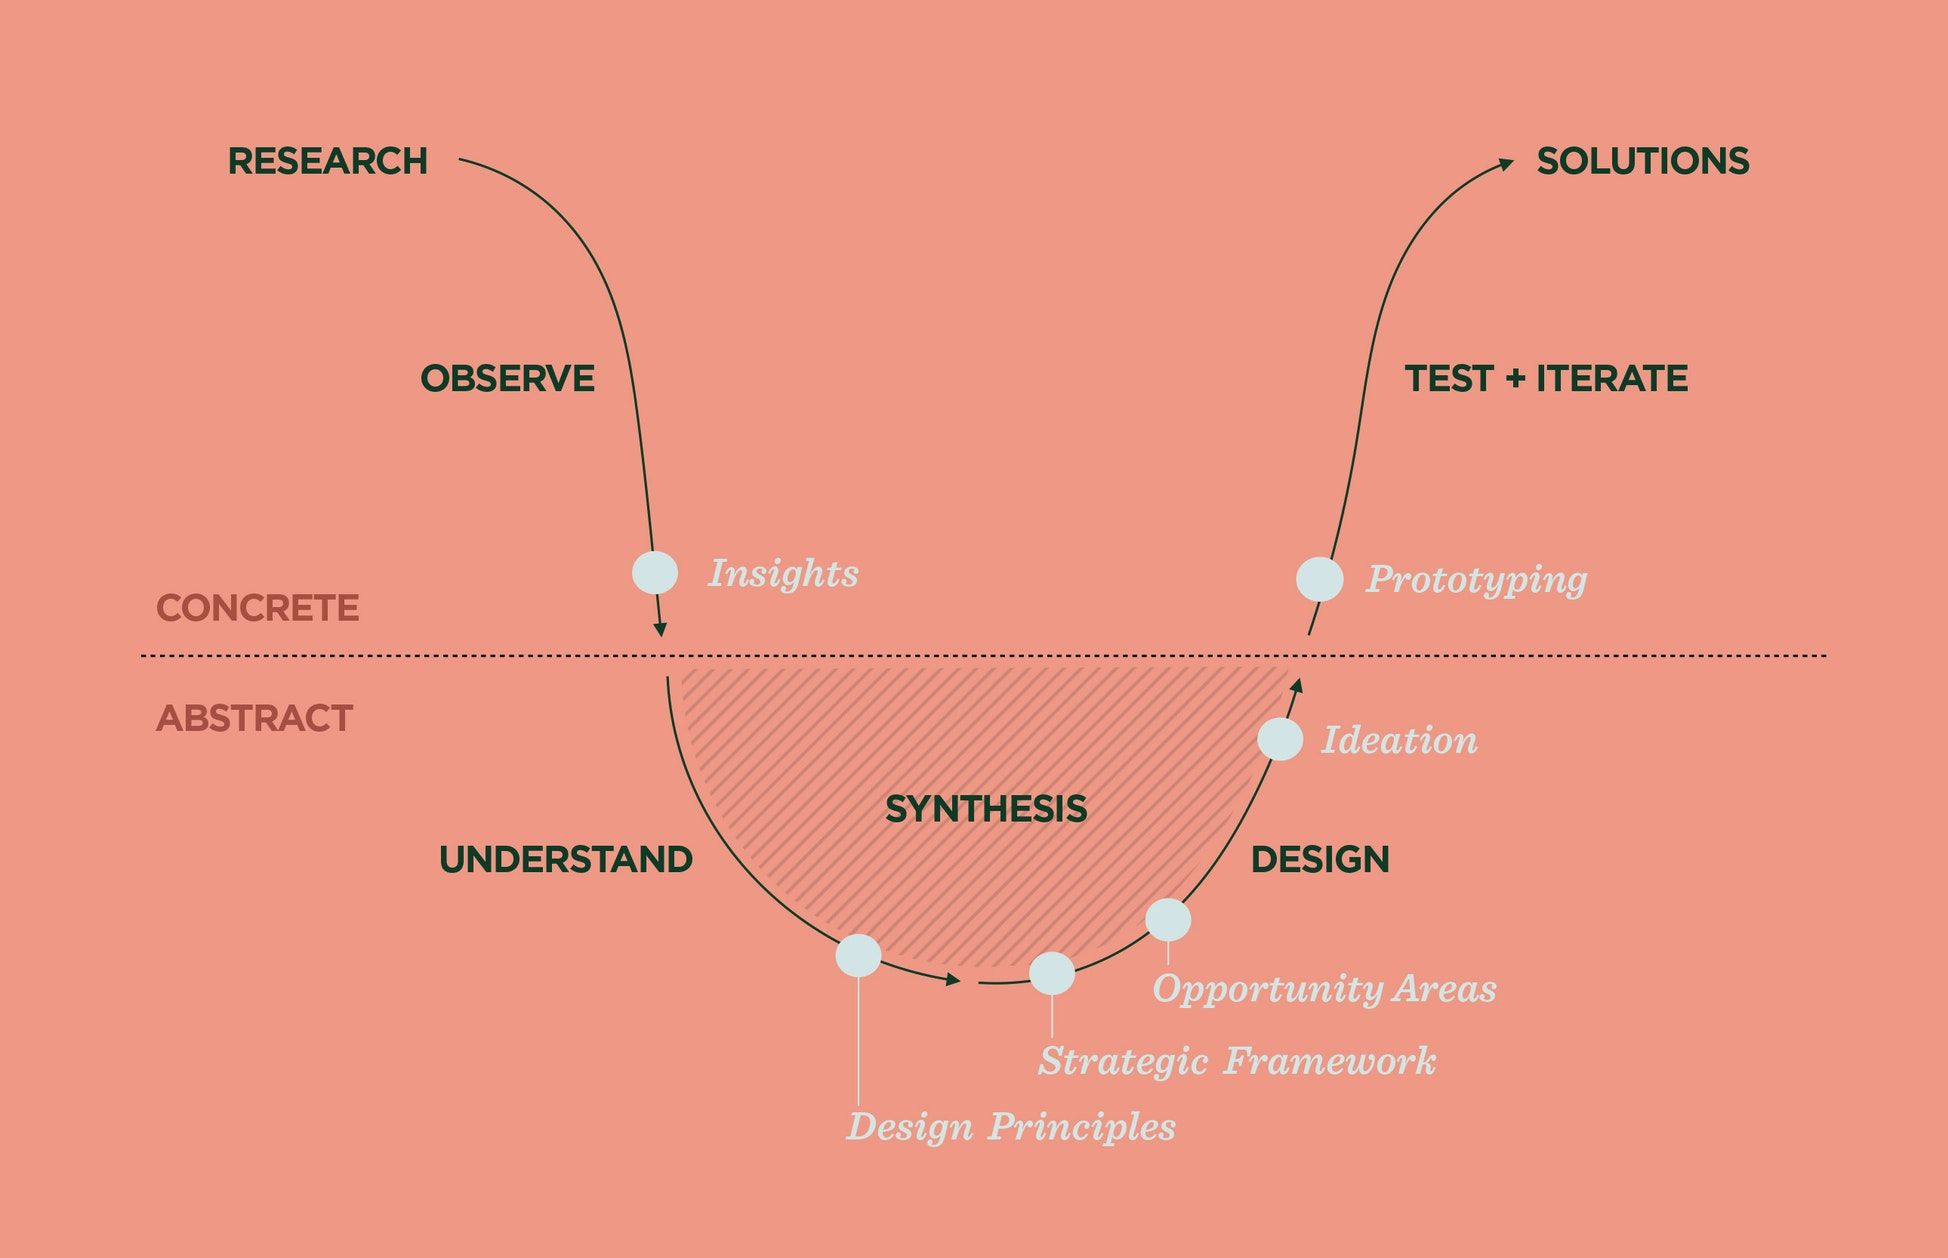 ideo by Mike Goldsby